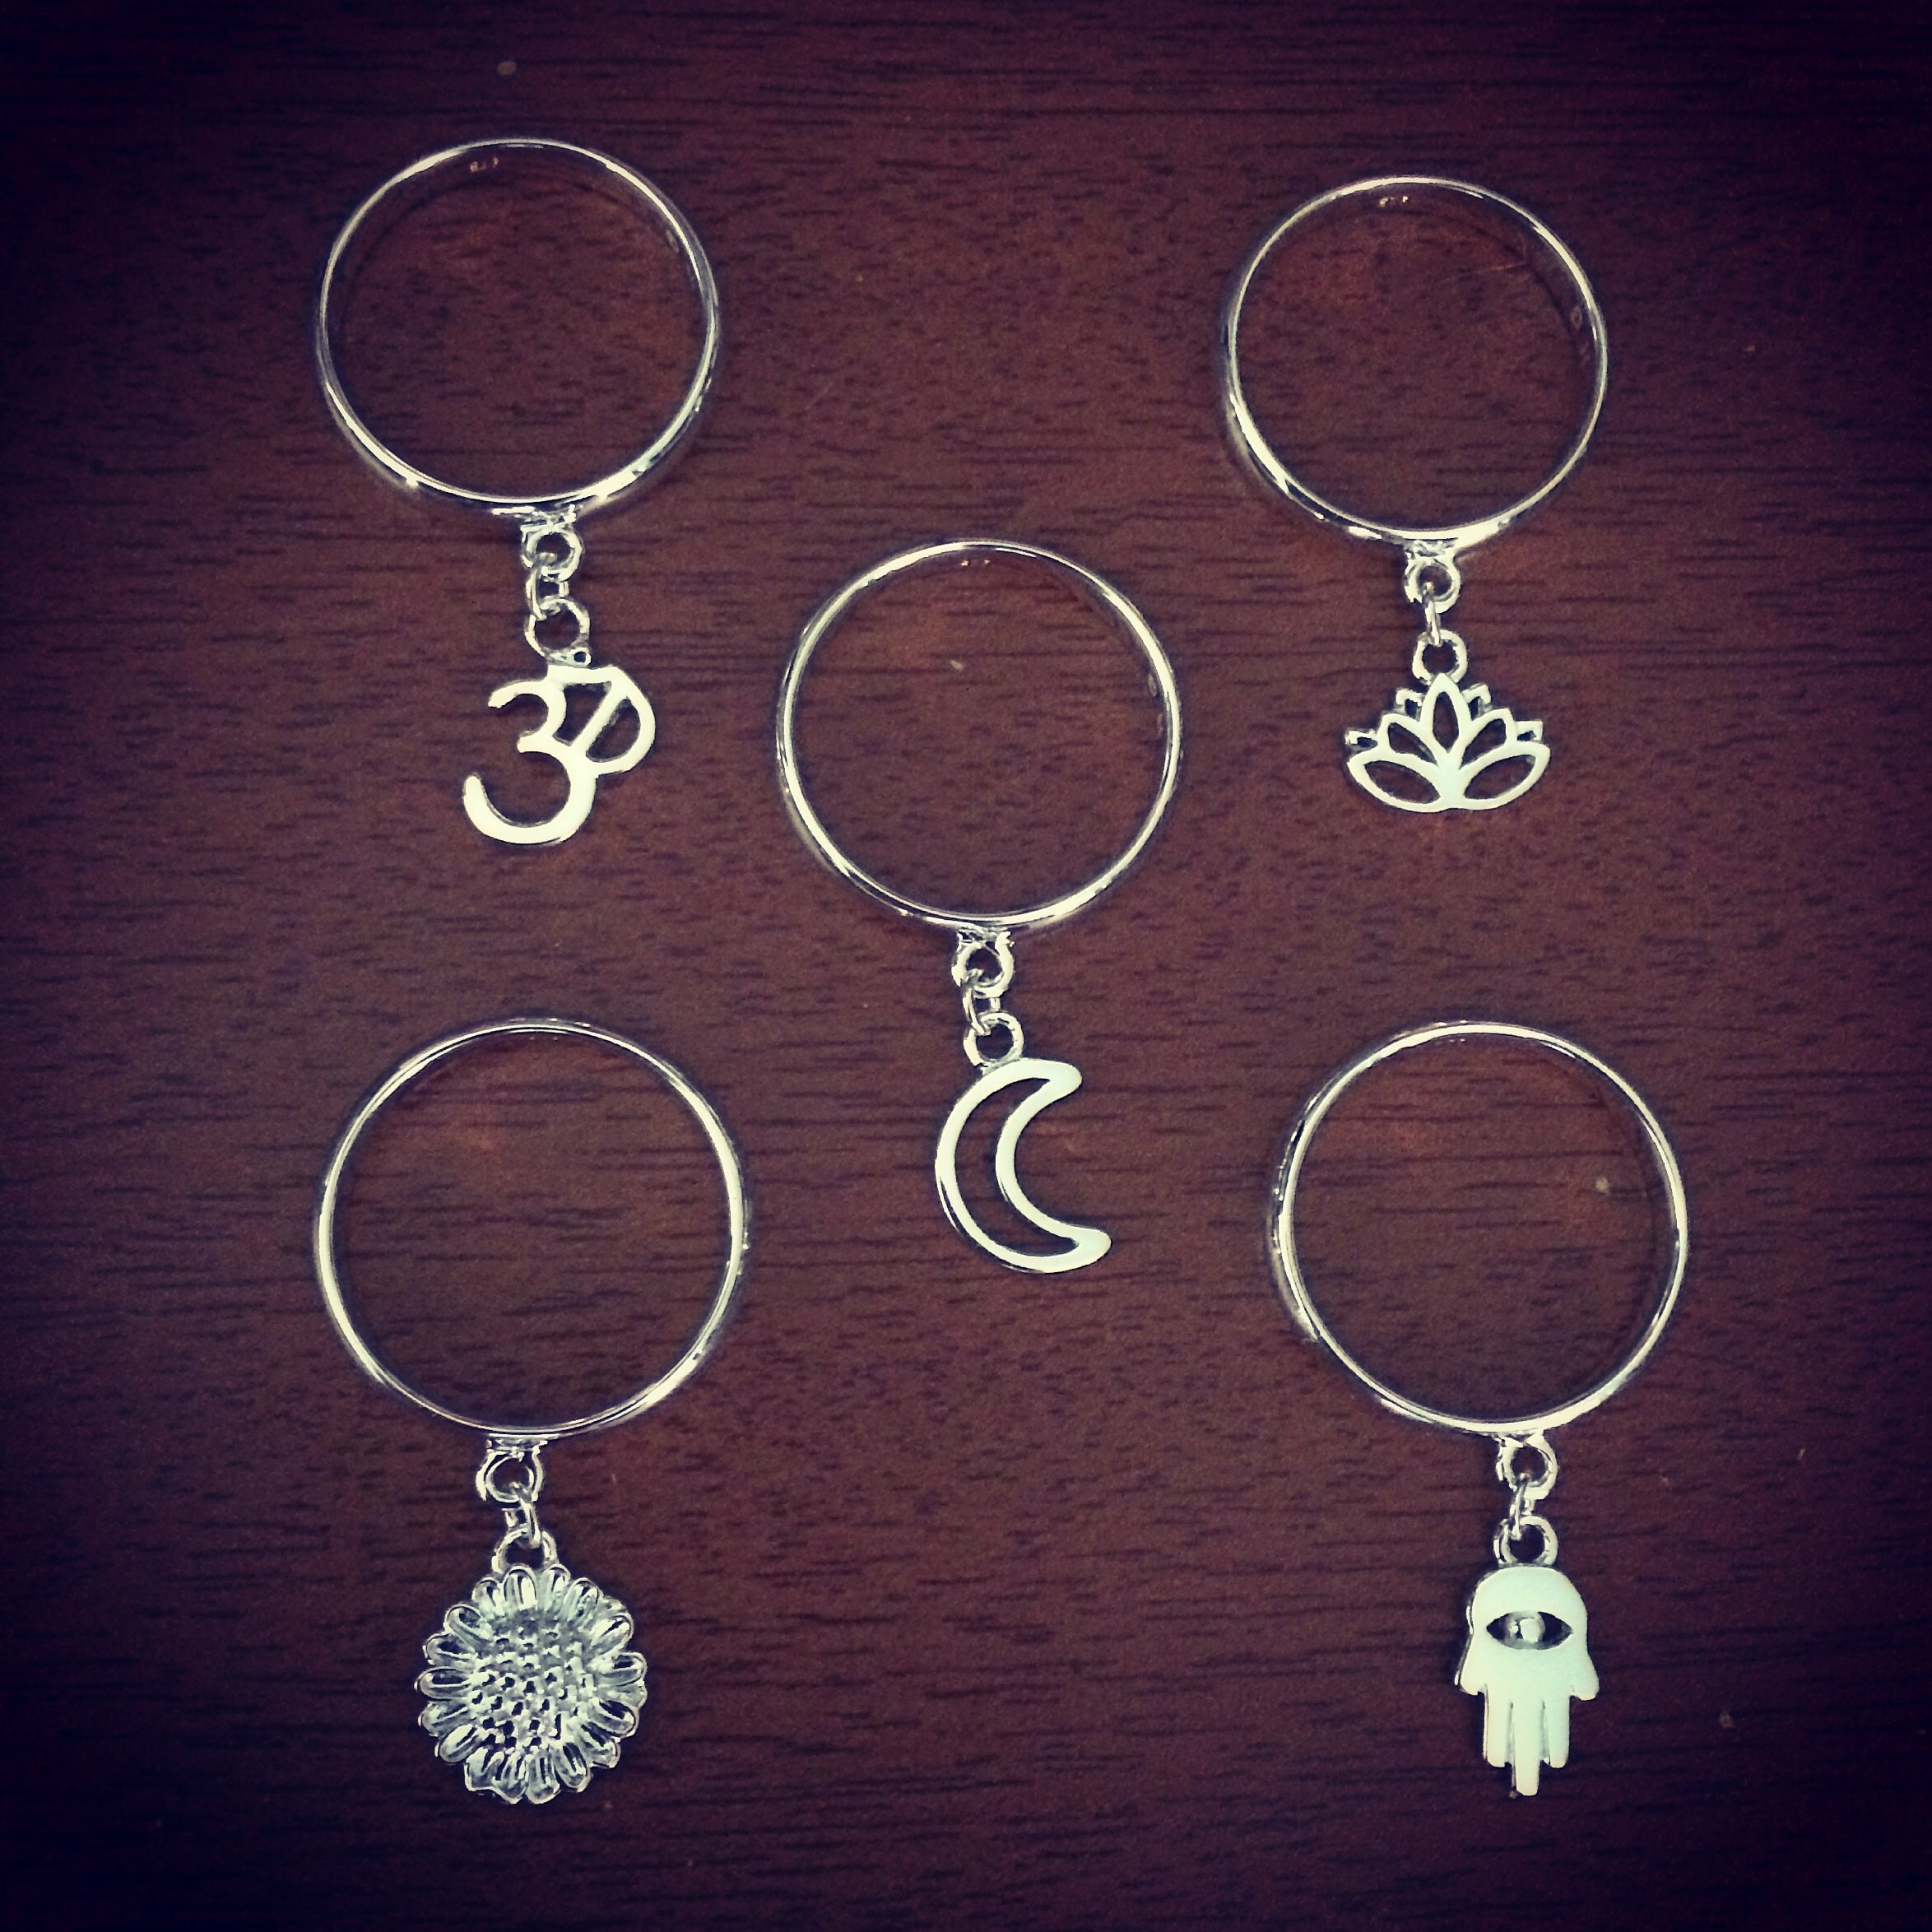 sterling silver charm dangle stack rings gatherer